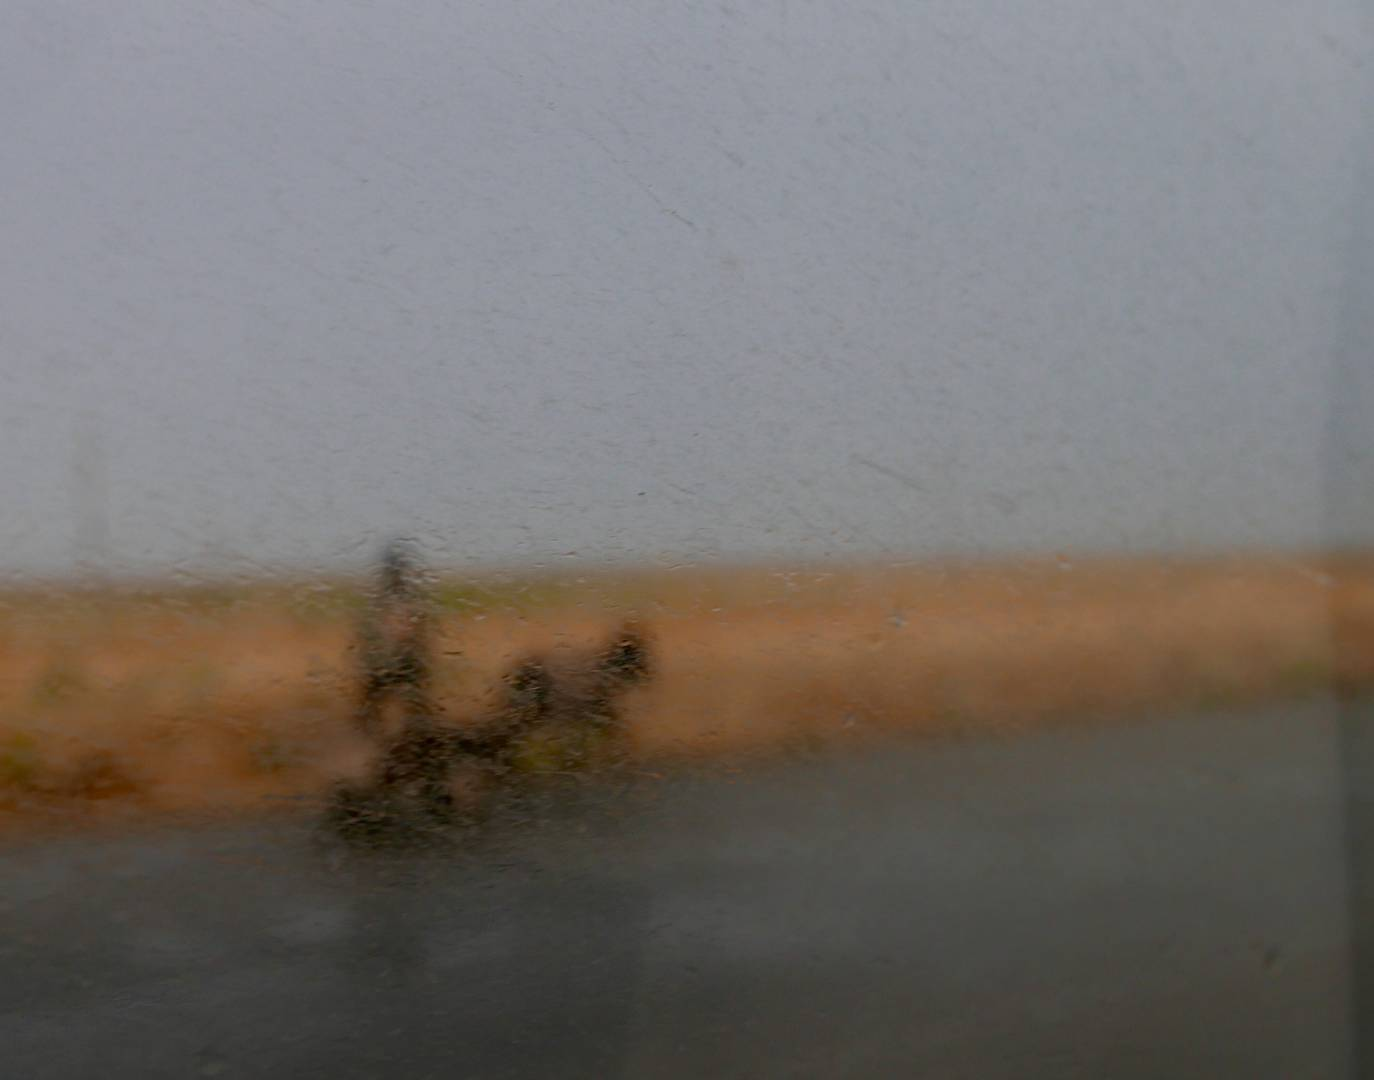 onkey Cart, through the side window of the minibus on a rainy day on the road in Uzbekistan